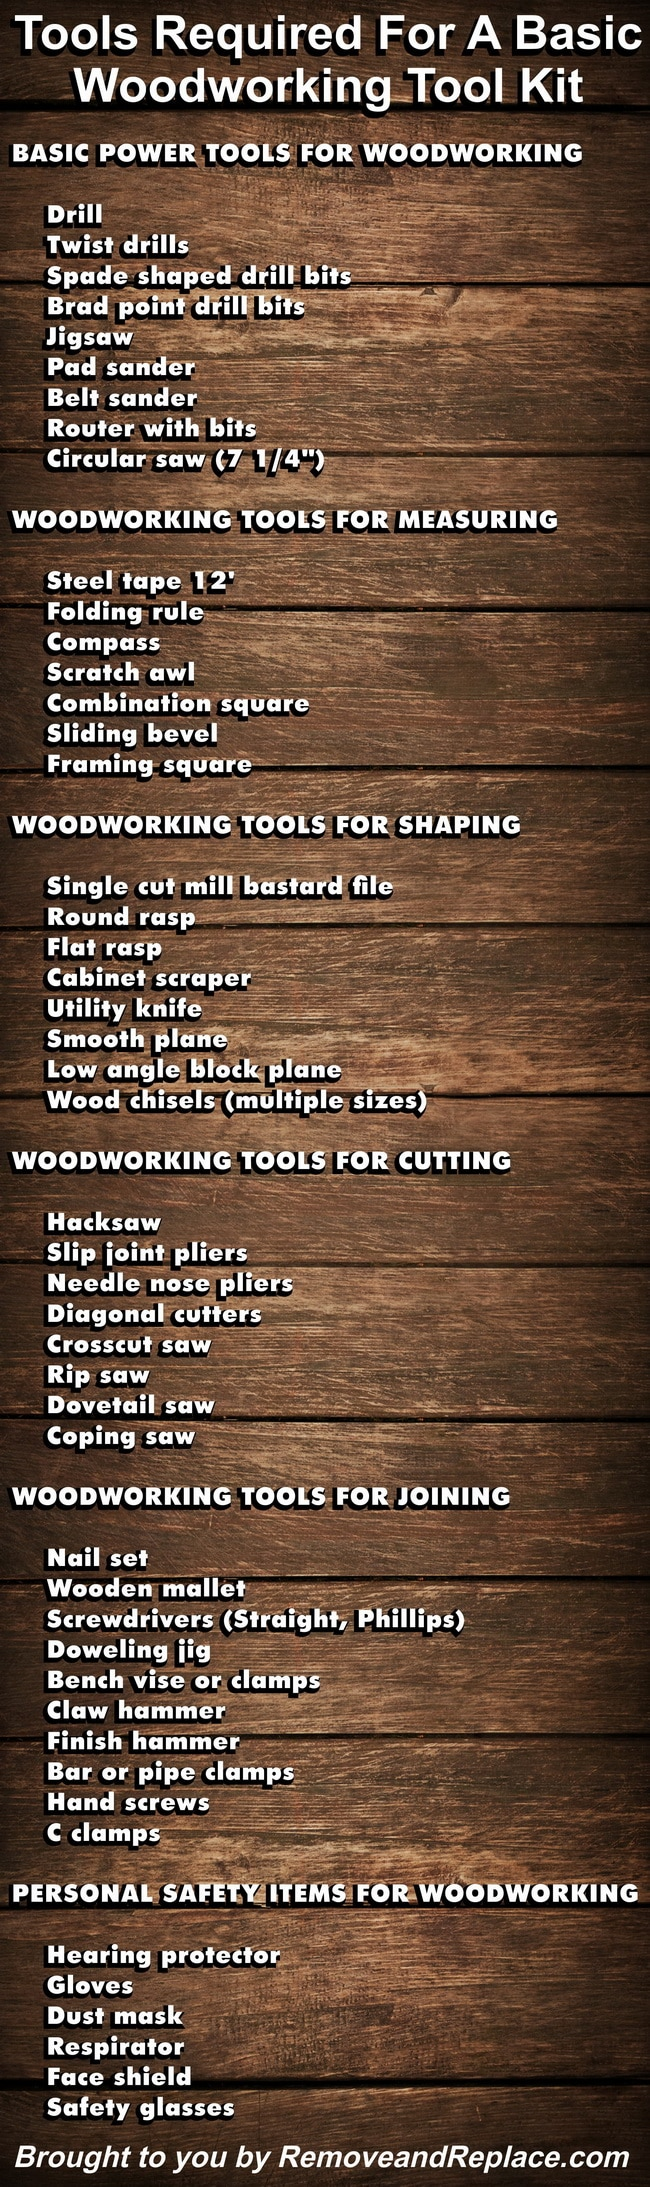 Tools Required For A Basic Woodworking Tool Kit